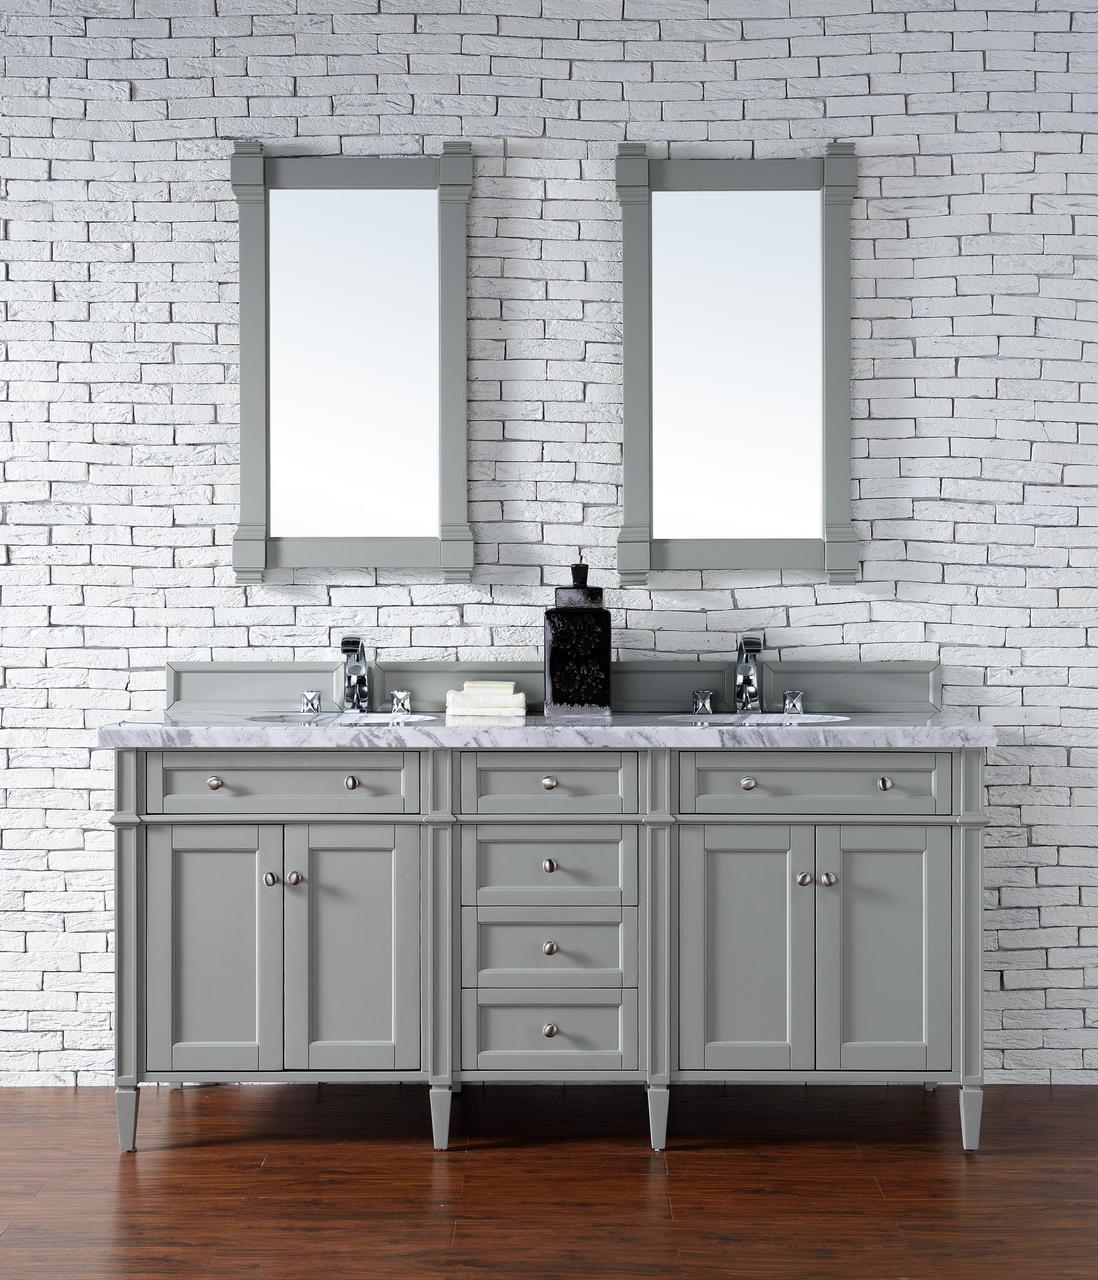 Excellent Bathroom Shower Ideas Small Huge Vinyl Wall Art Bathroom Quotes Round Good Paint For Bathroom Ceiling Shabby Chic Bath Shelves Youthful Install A Bath Spout ColouredBathroom Stall Doors Hardware Contemporary 72 Inch Double Sink Bathroom Vanity Gray Finish No Top